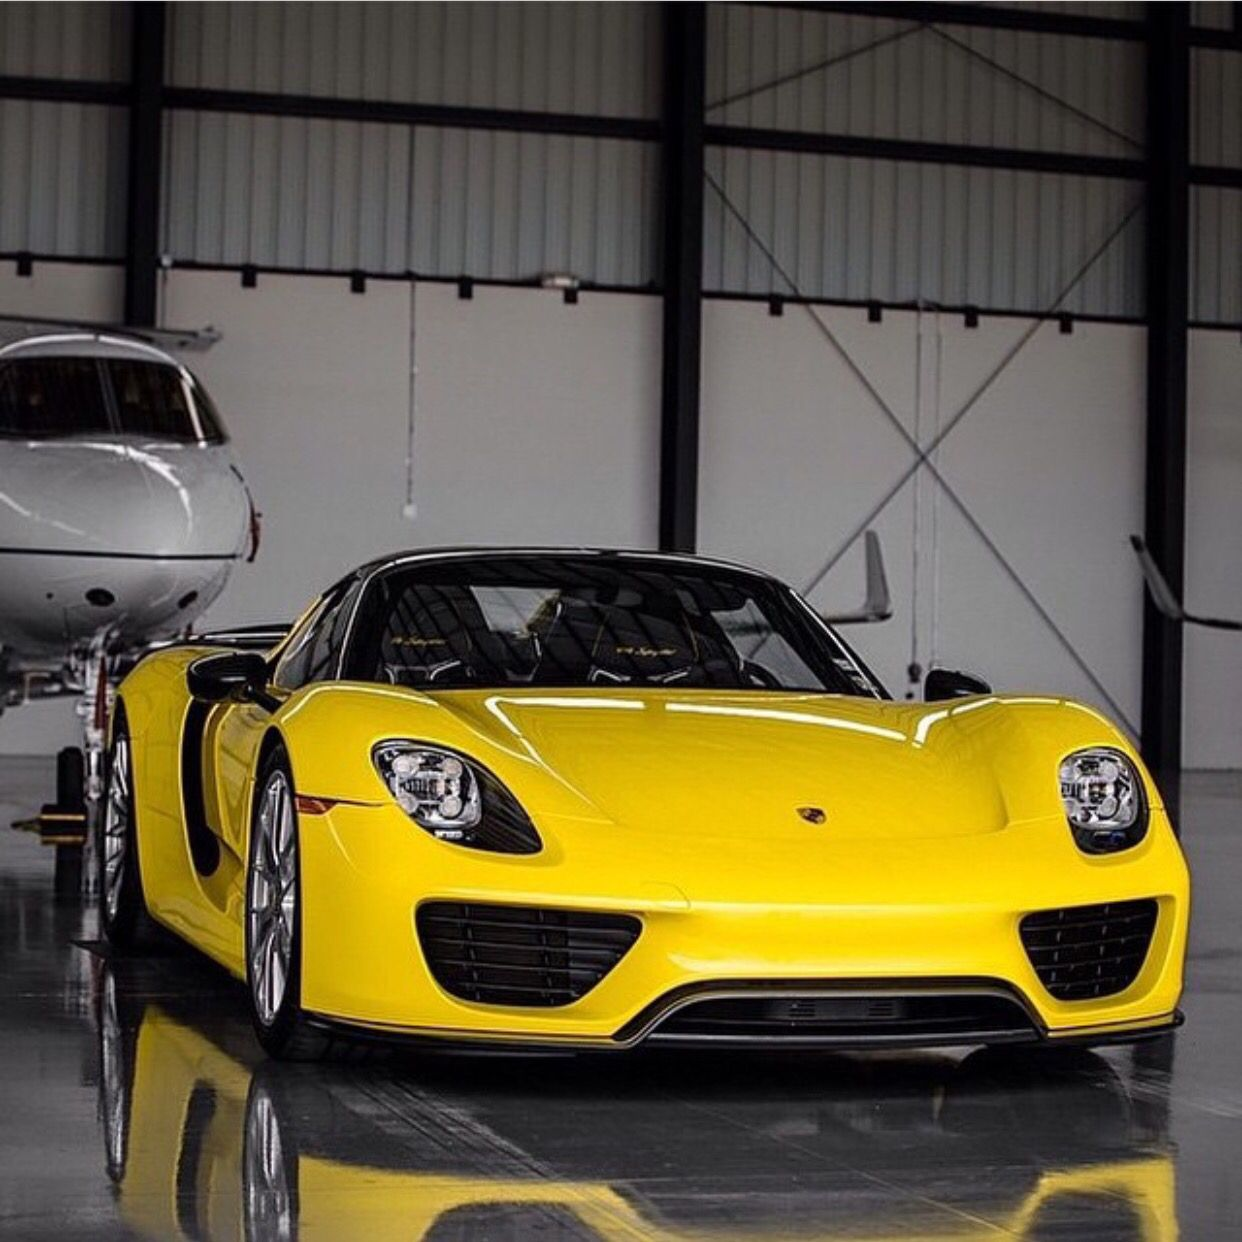 Porsche 918 Spider Painted In Racing Yellow Photo Taken By